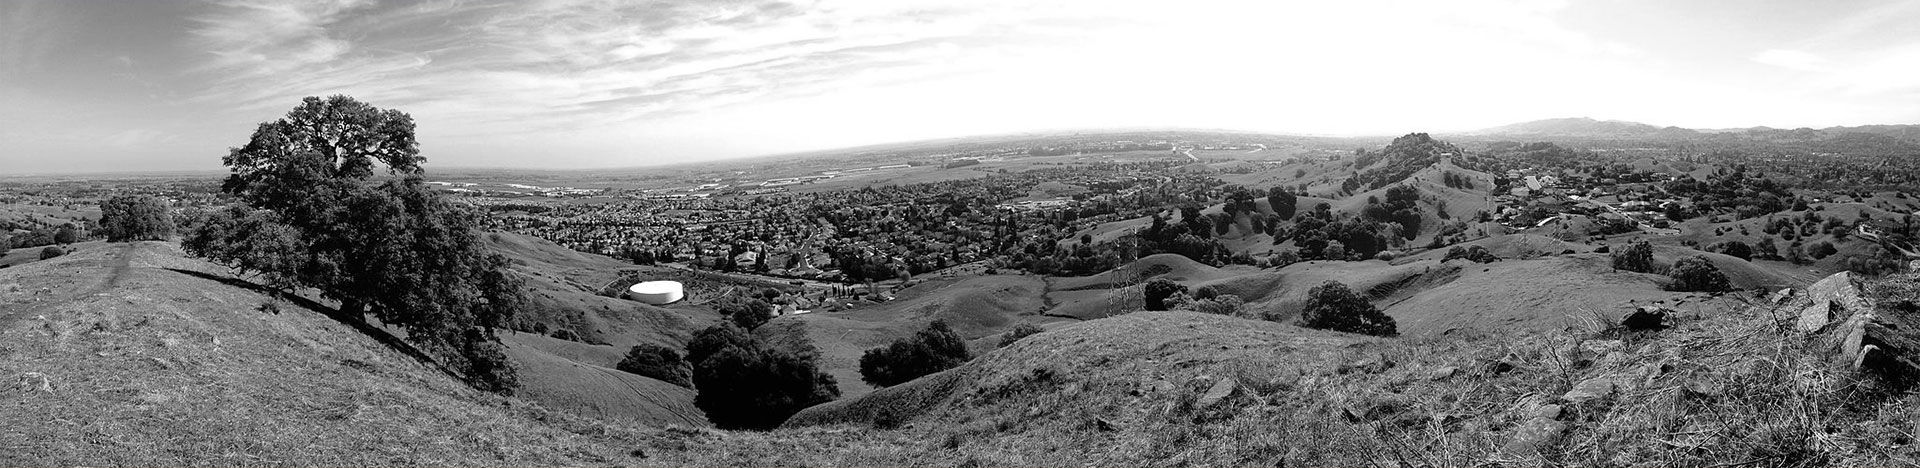 Vacaville Hills, Solano County